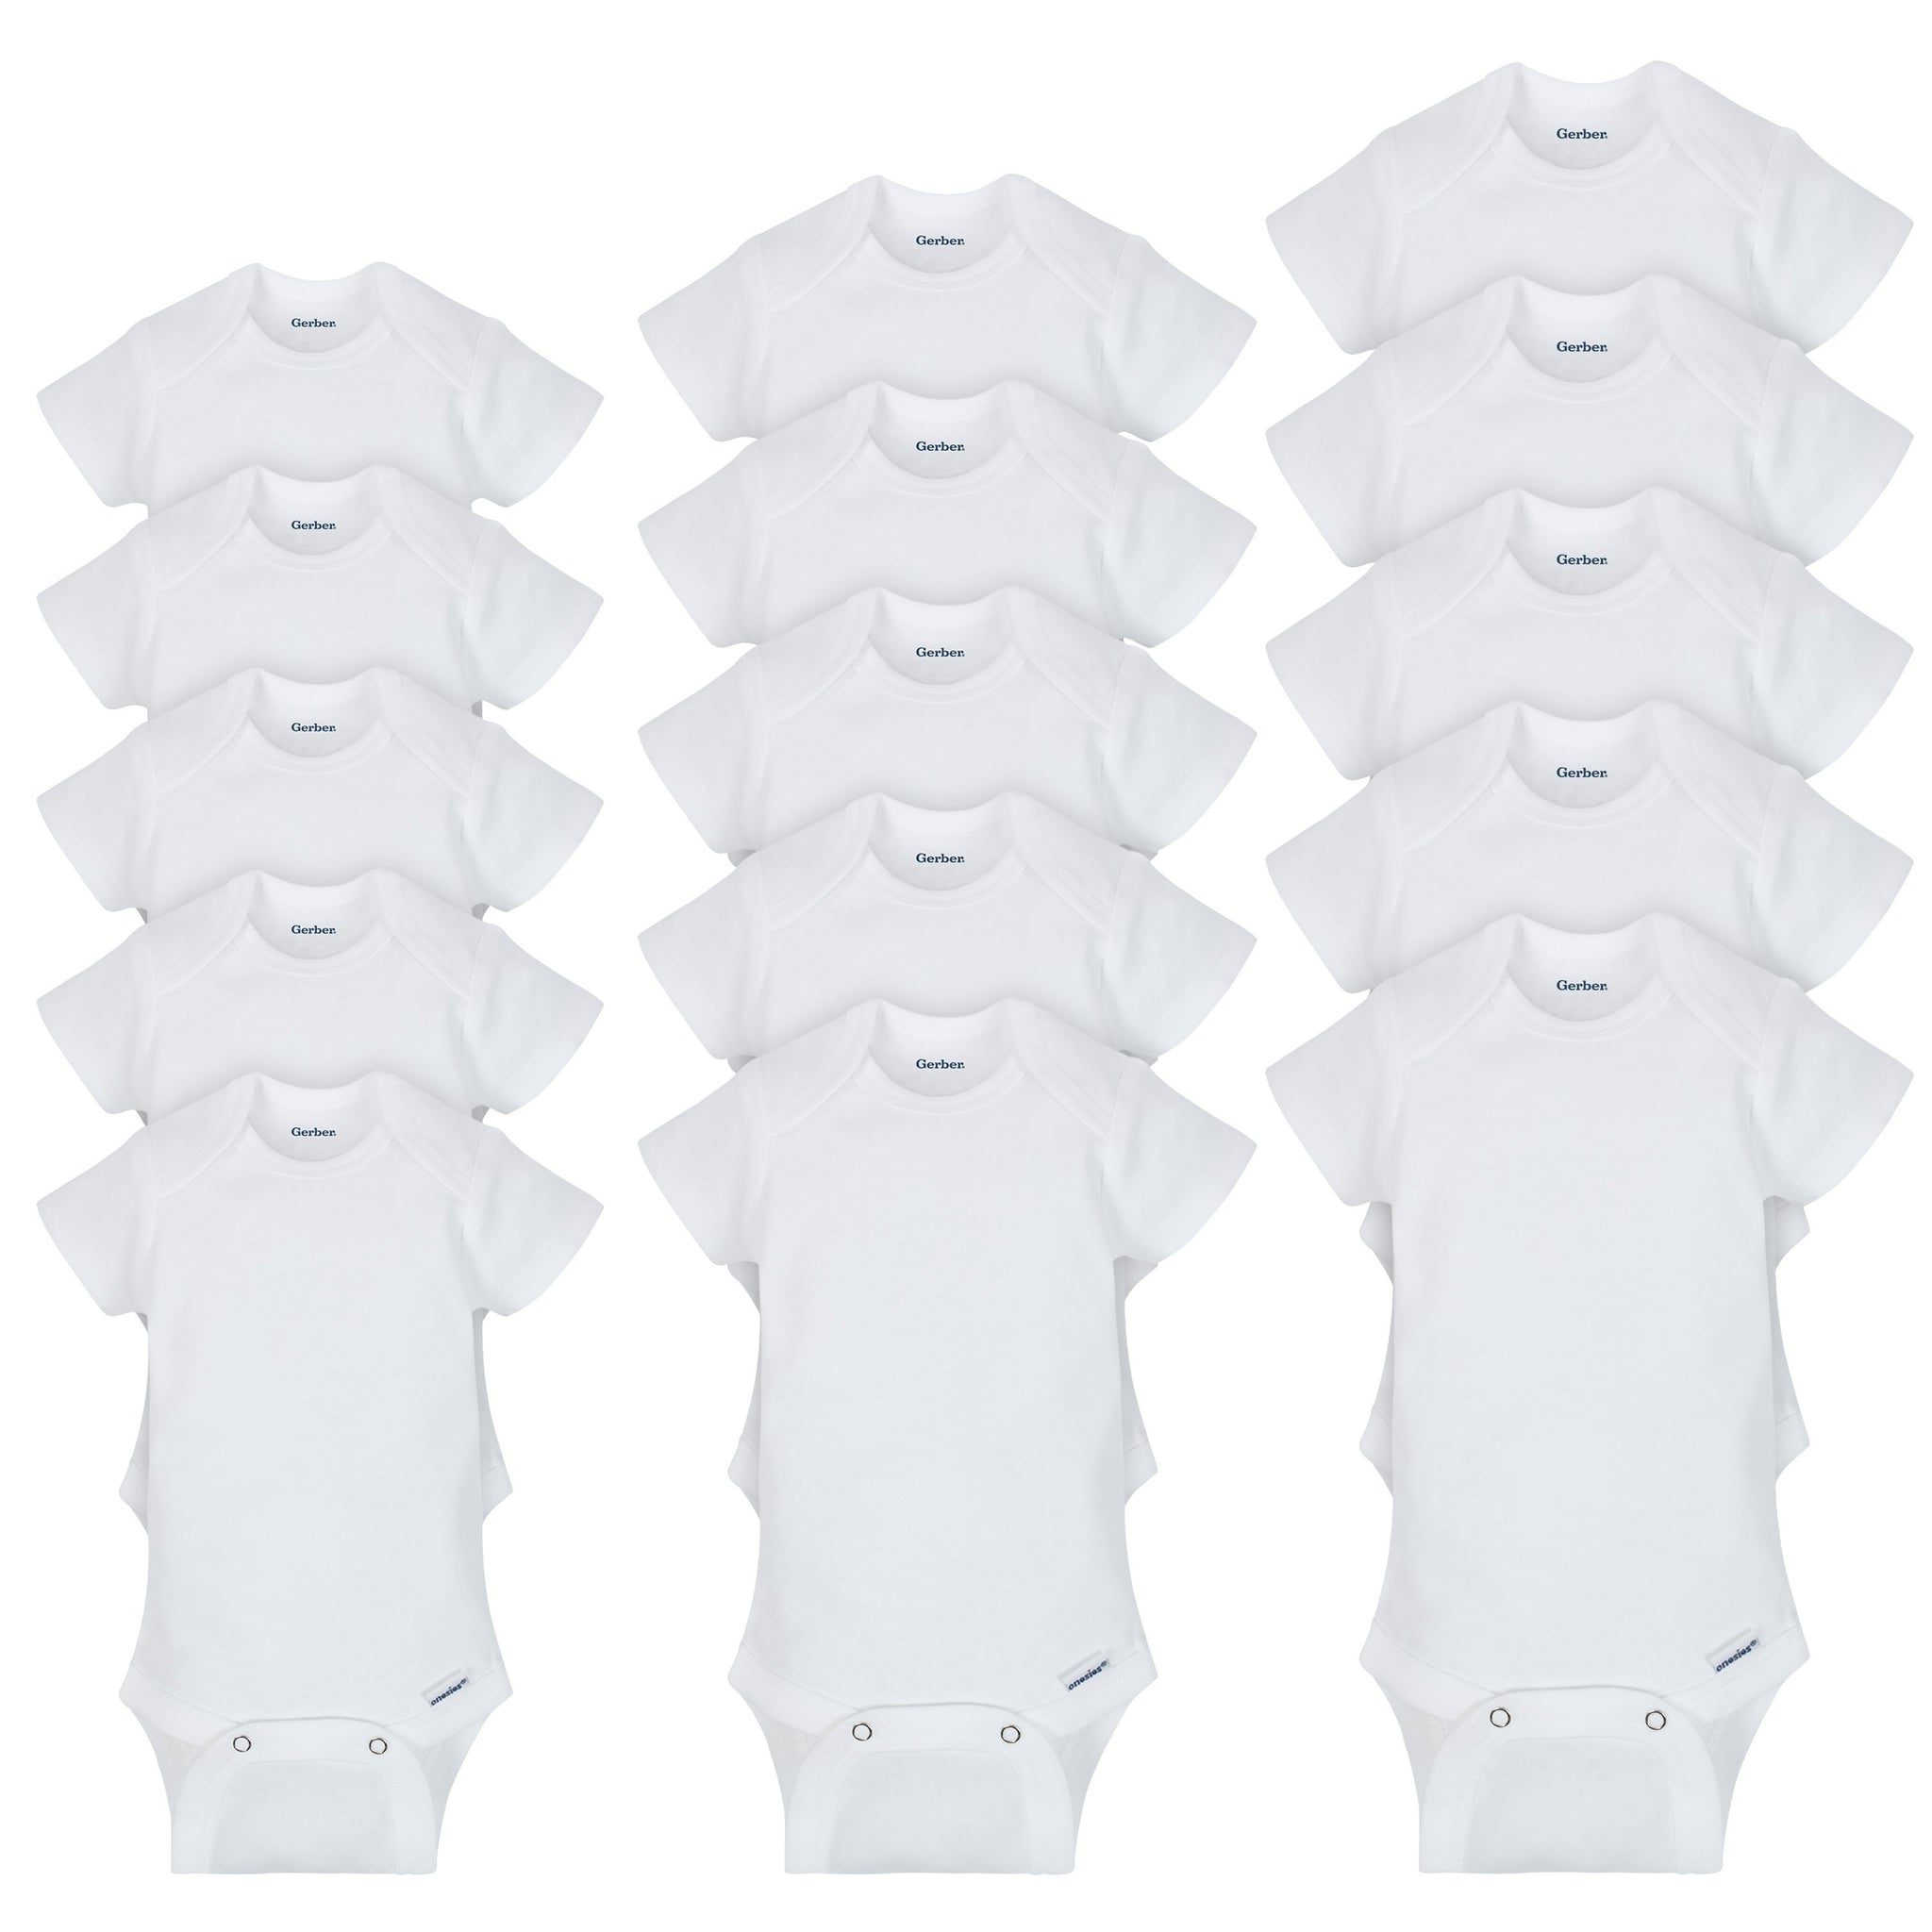 15-Pack Grow-With-Me White Onesies® Brand Short Sleeve Bodysuit Assorted Size Set-Gerber Childrenswear